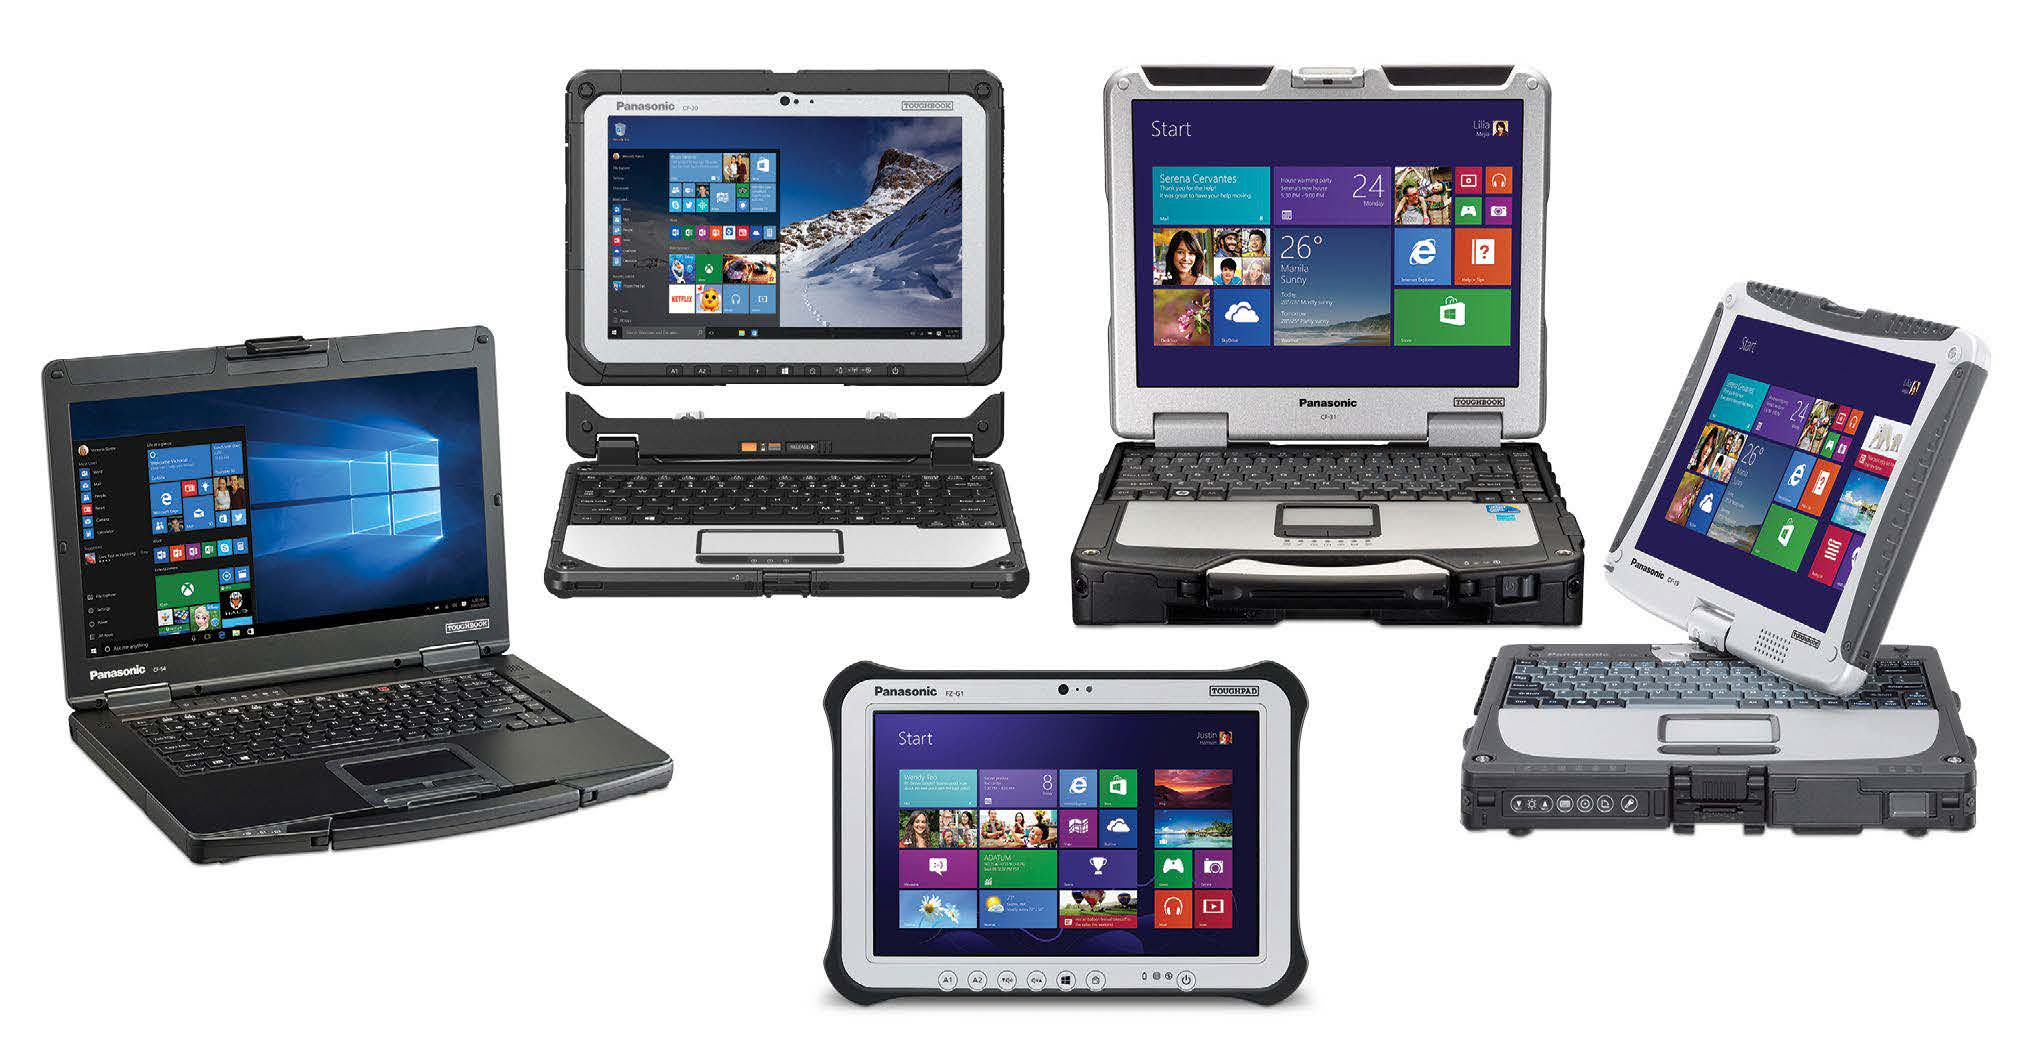 Panasonic Toughbook Public Safety Bundles